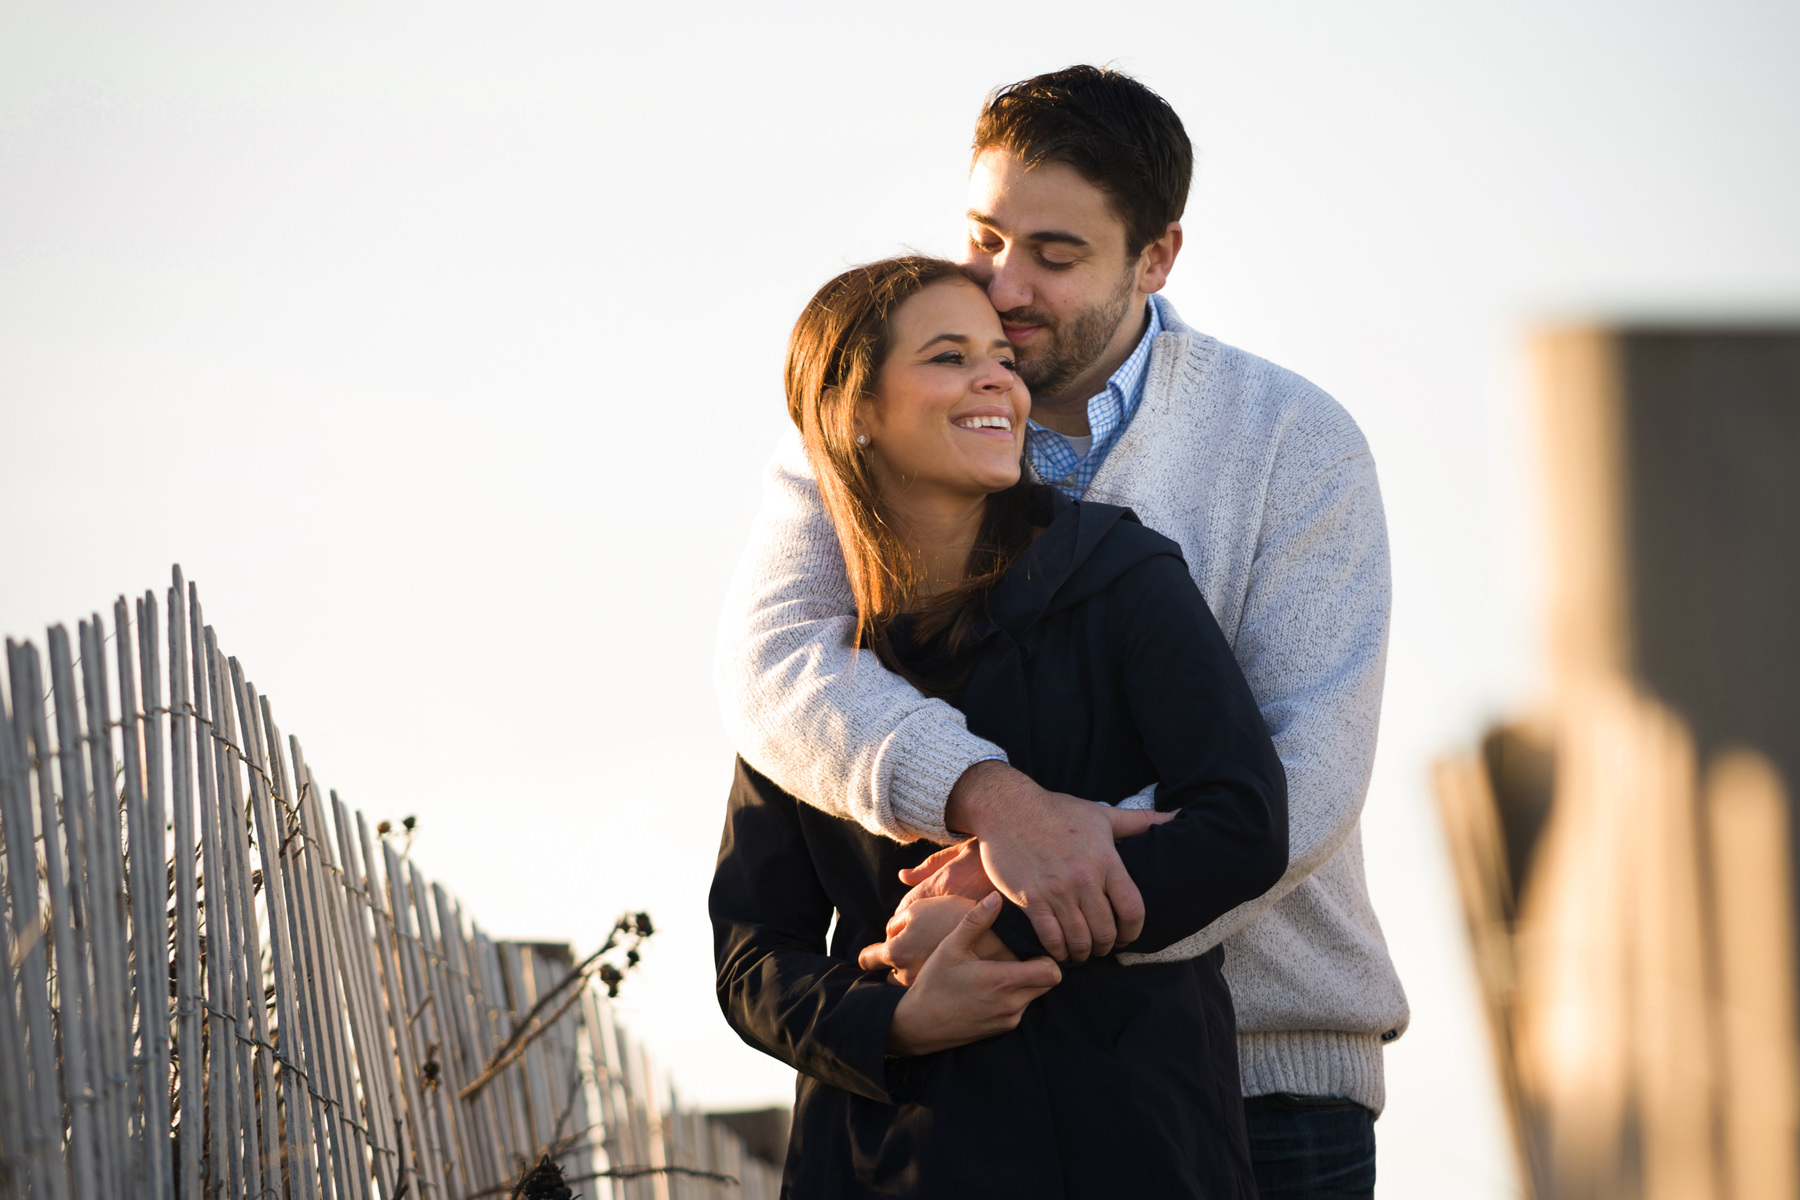 Every couple is so different to work with. With Danni and Scott, I found them incredibly at ease with each other and with me. It was wonderful to have images that felt so natural right from the moment we started at Duxbury Beach.